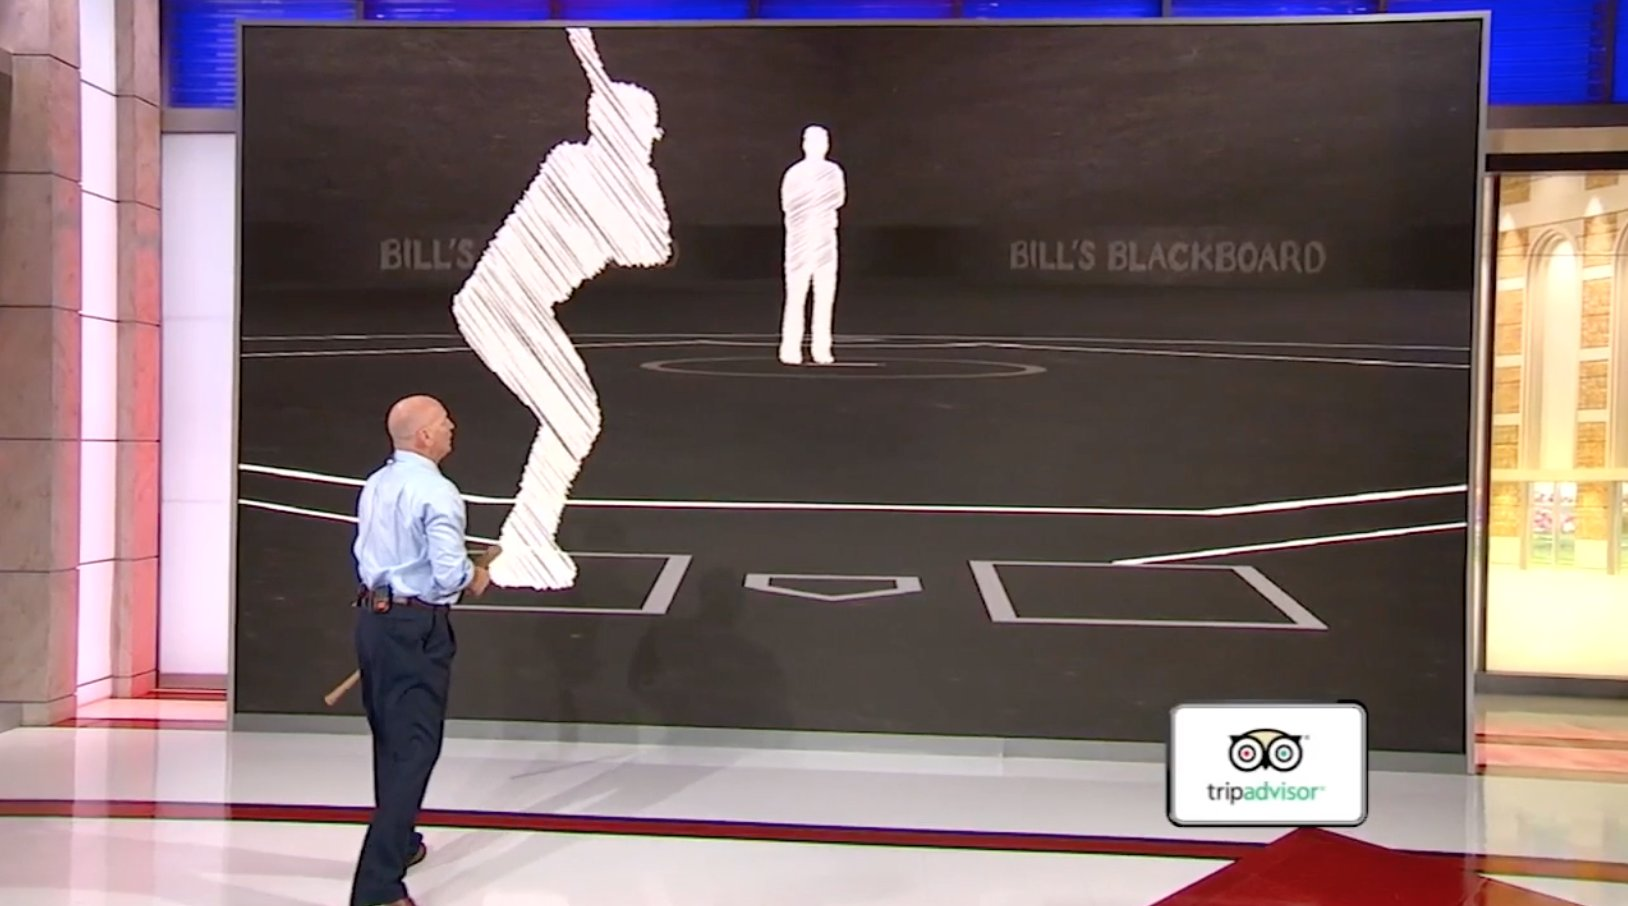 Catch the rest of Bill's lesson on release points on #MLBNBreakdown at 10:30aE. https://t.co/fLp4k0Nu7U